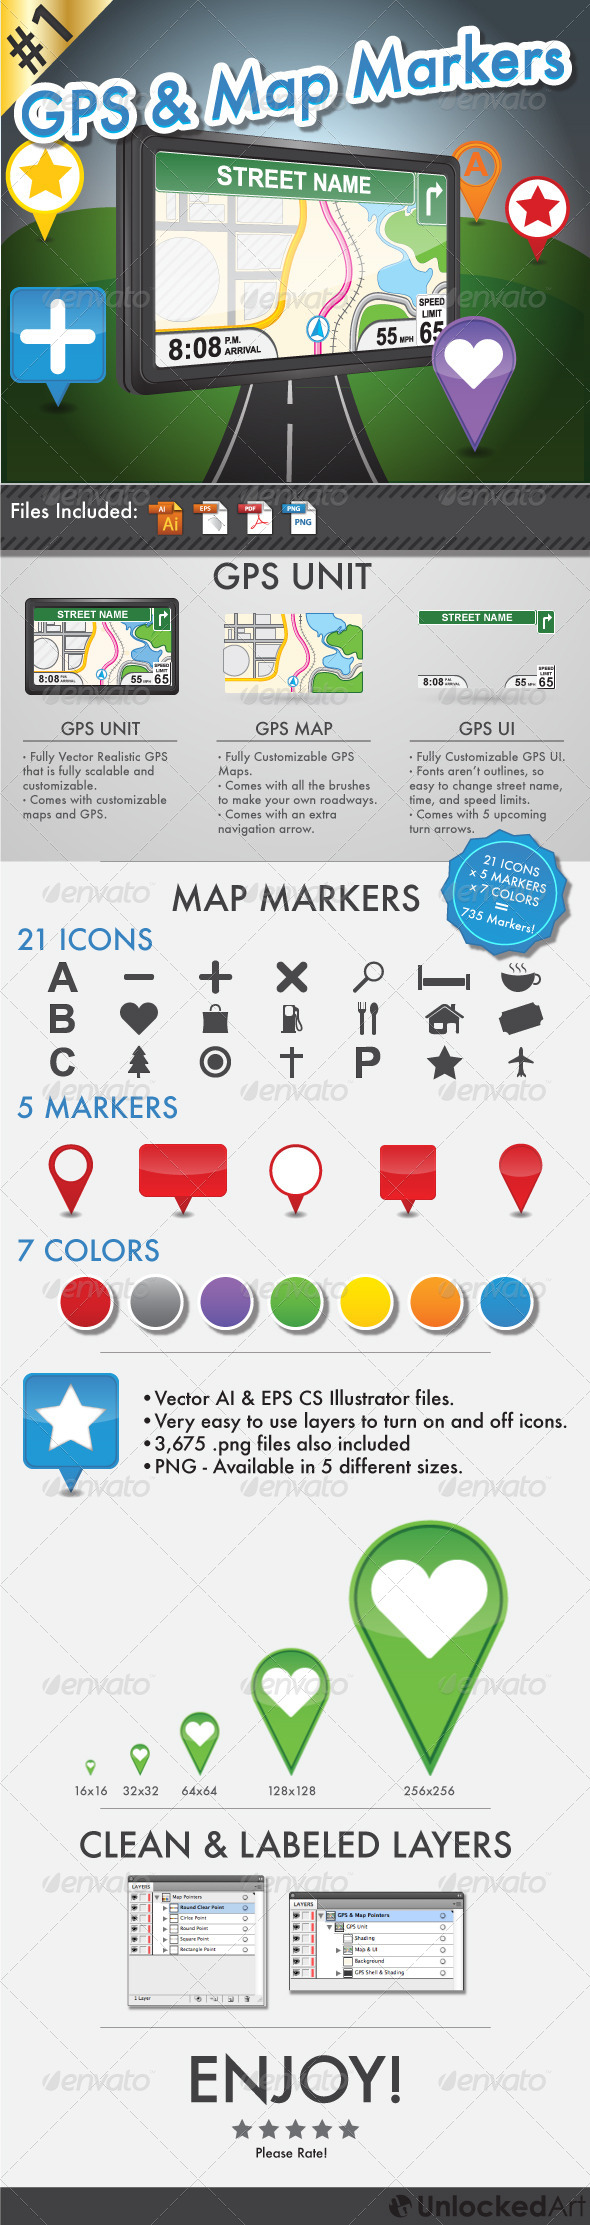 GraphicRiver GPS and Map Markers 4246816